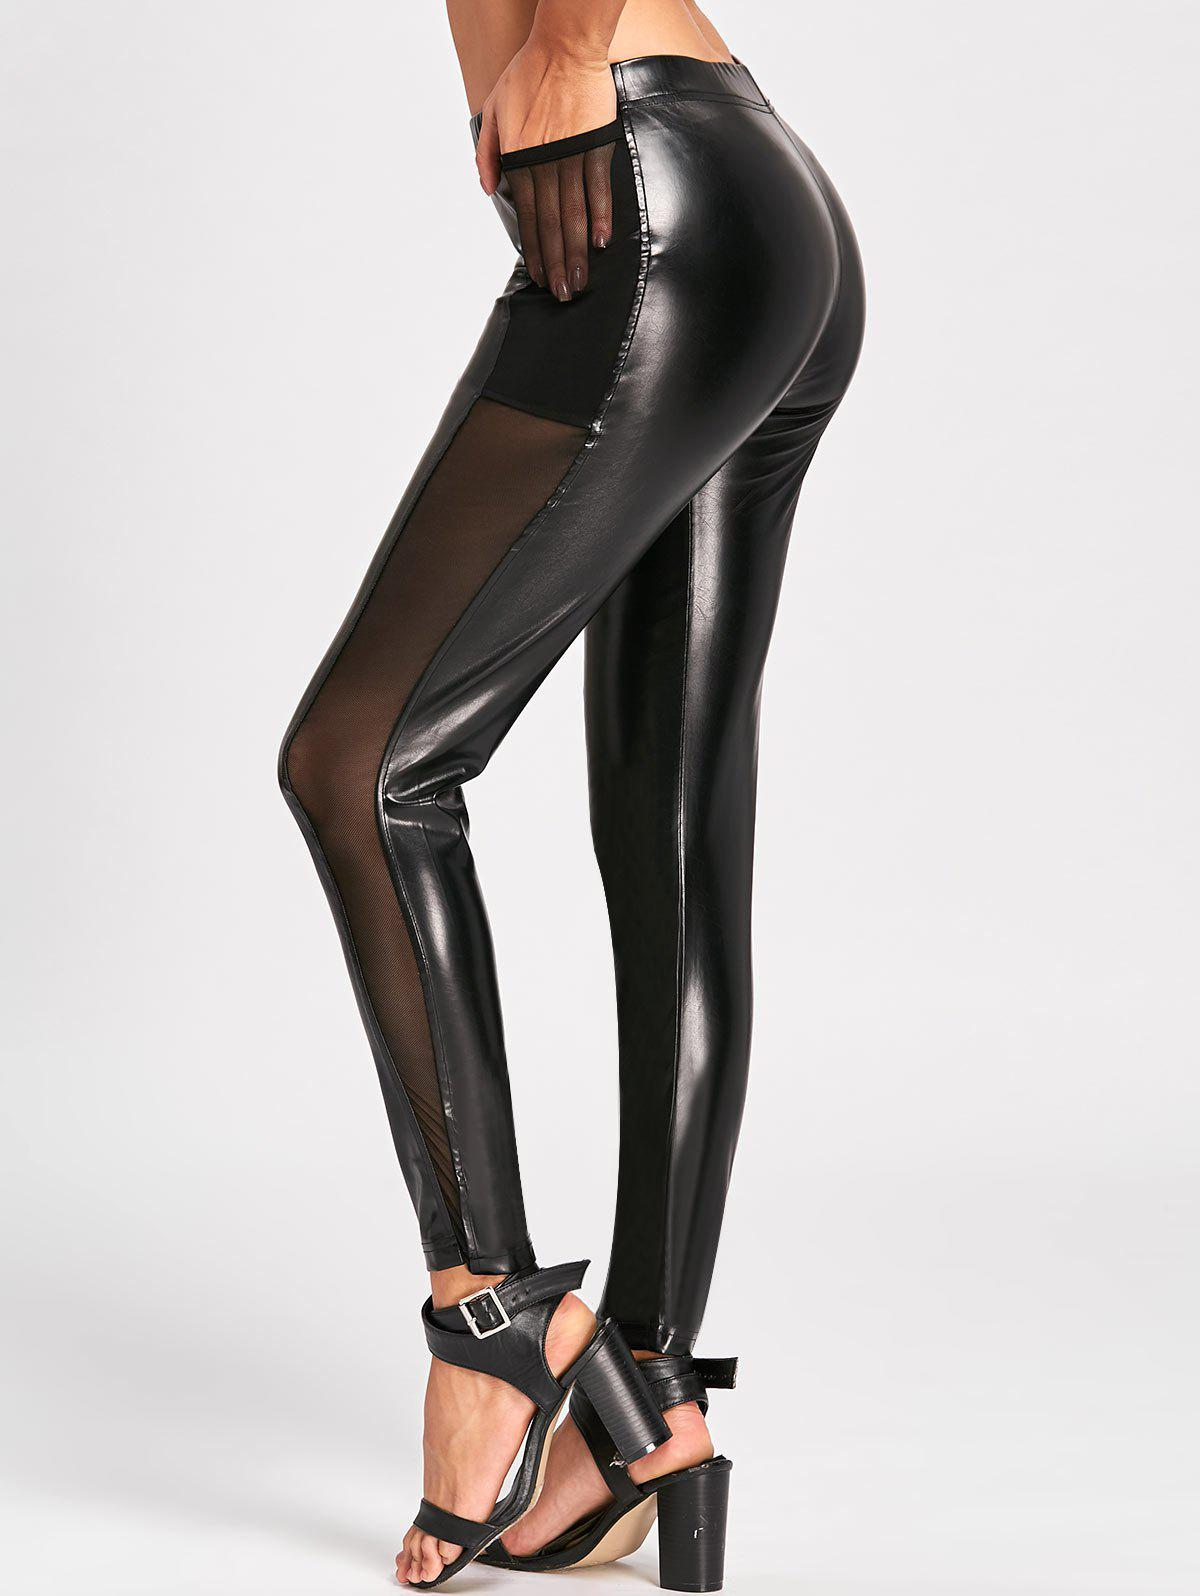 High Waist Sheer Mesh Insert Faux Leather Pants - BLACK 2XL